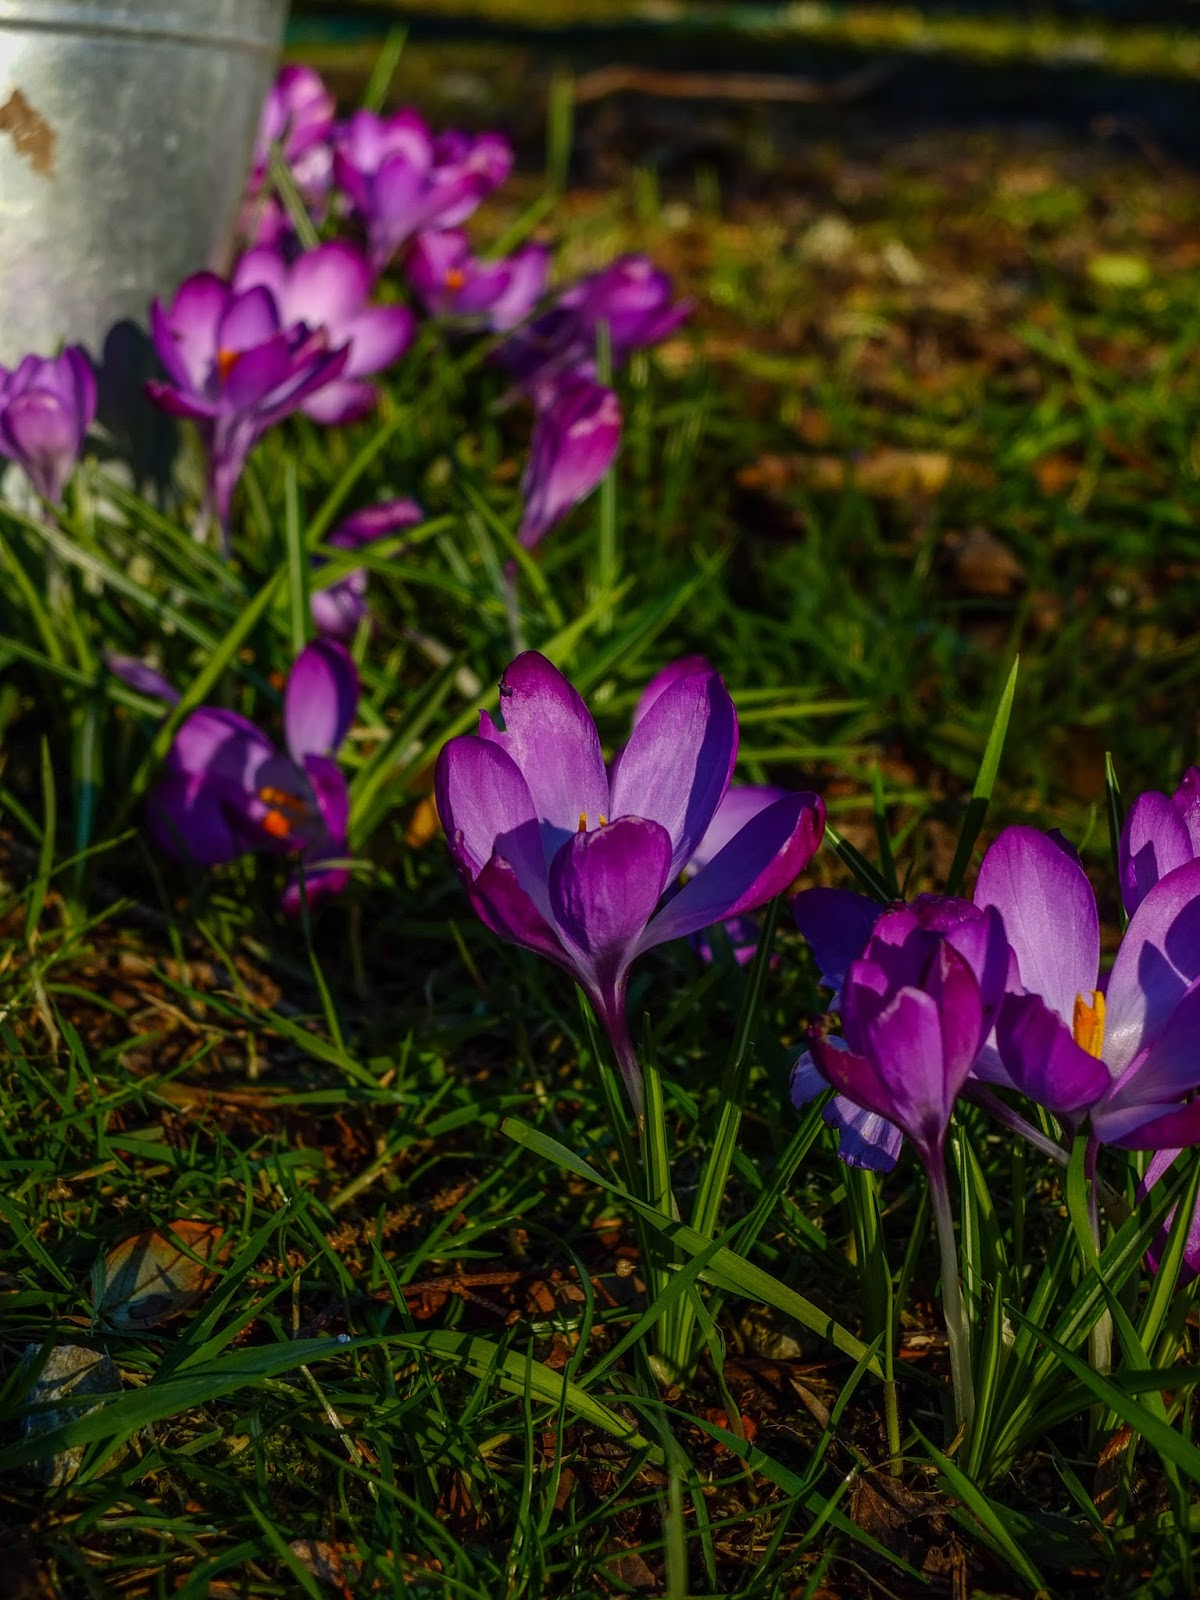 Crocuses growing in grass under a bush.